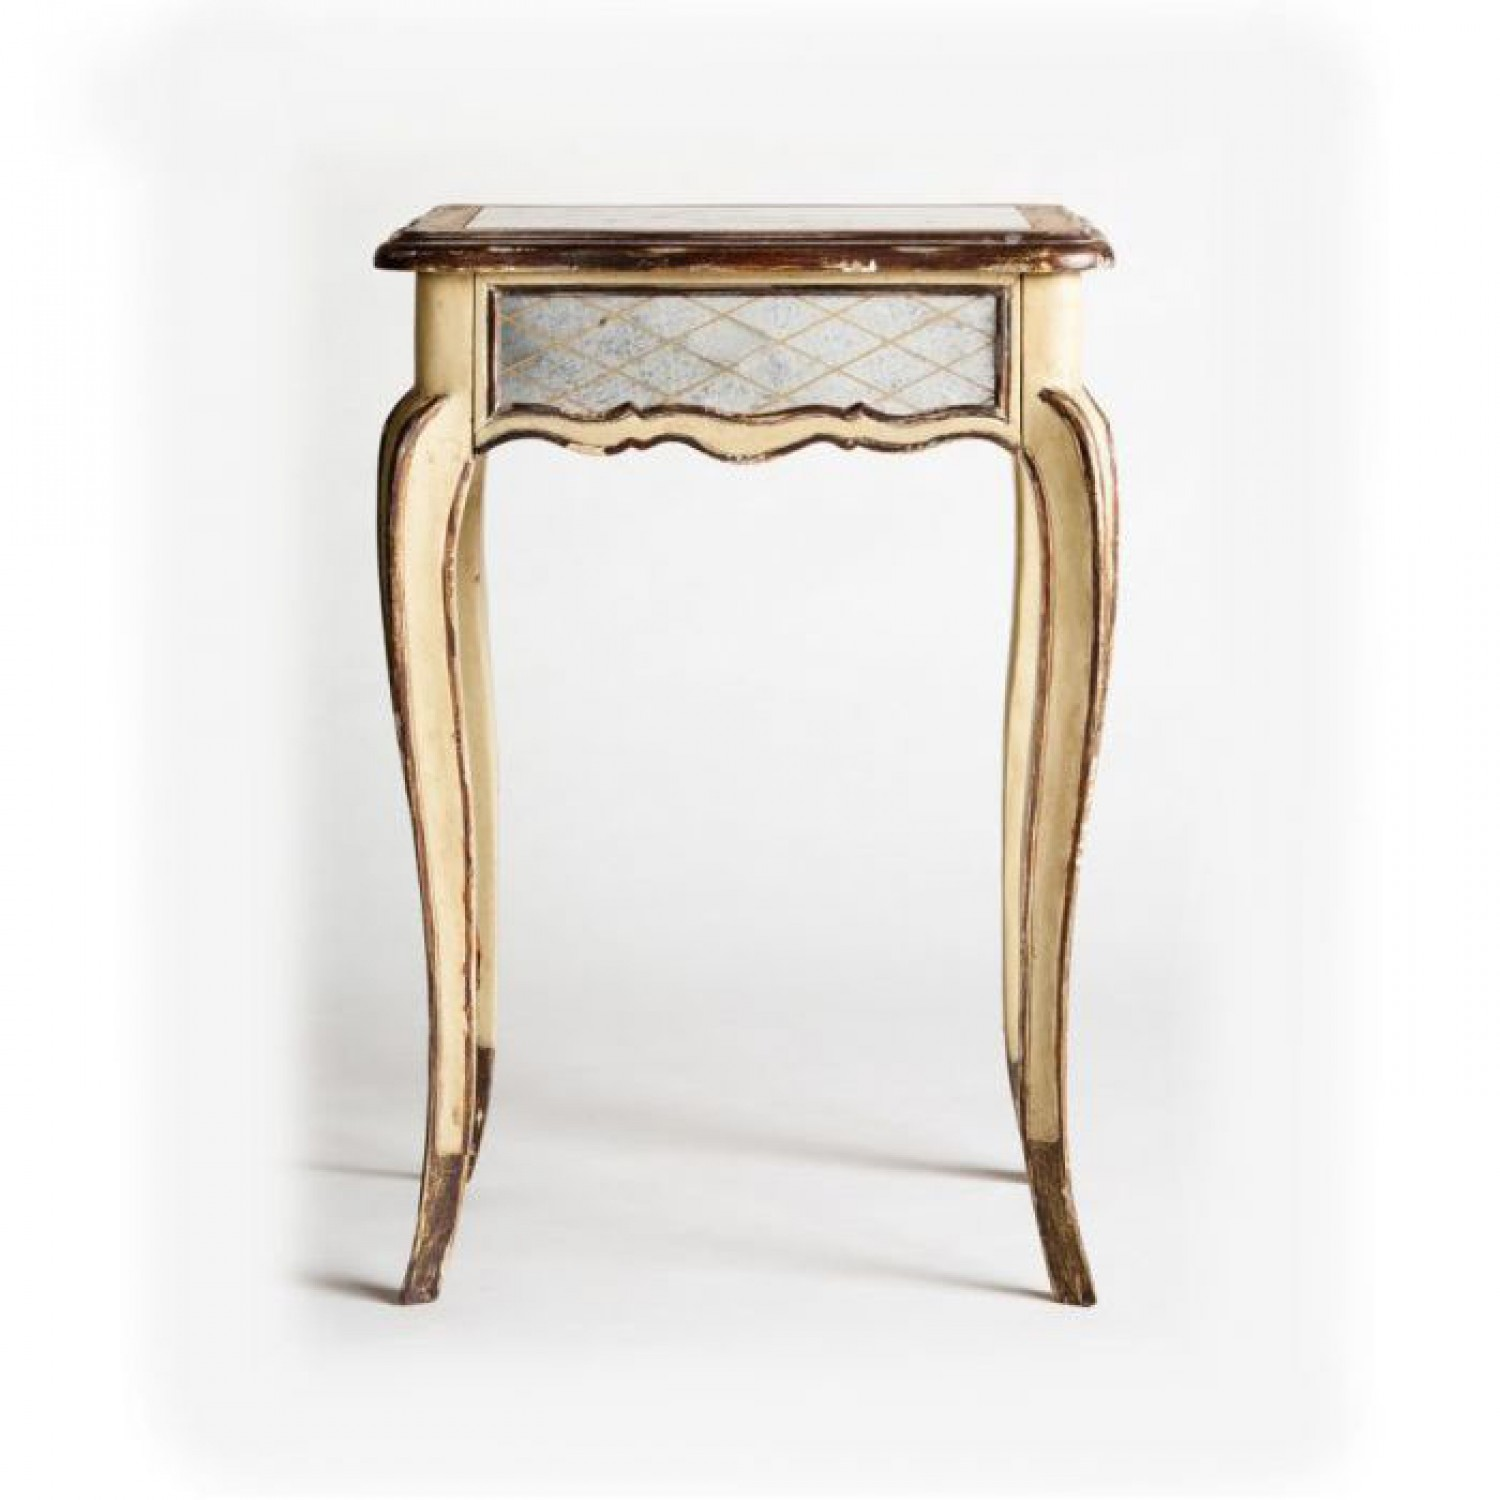 Small Decorative End Tables Tall End Tables The Decorative As Well As Functional